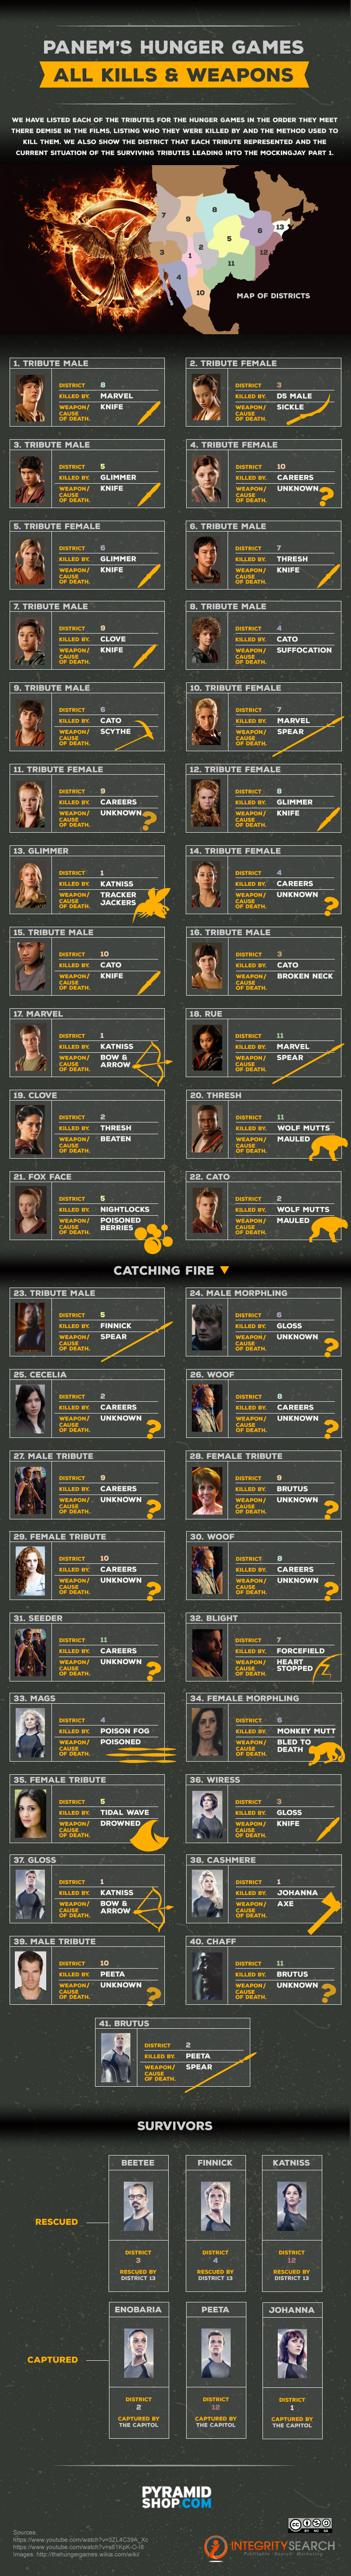 Hunger Games: All Kills And Weapons Used